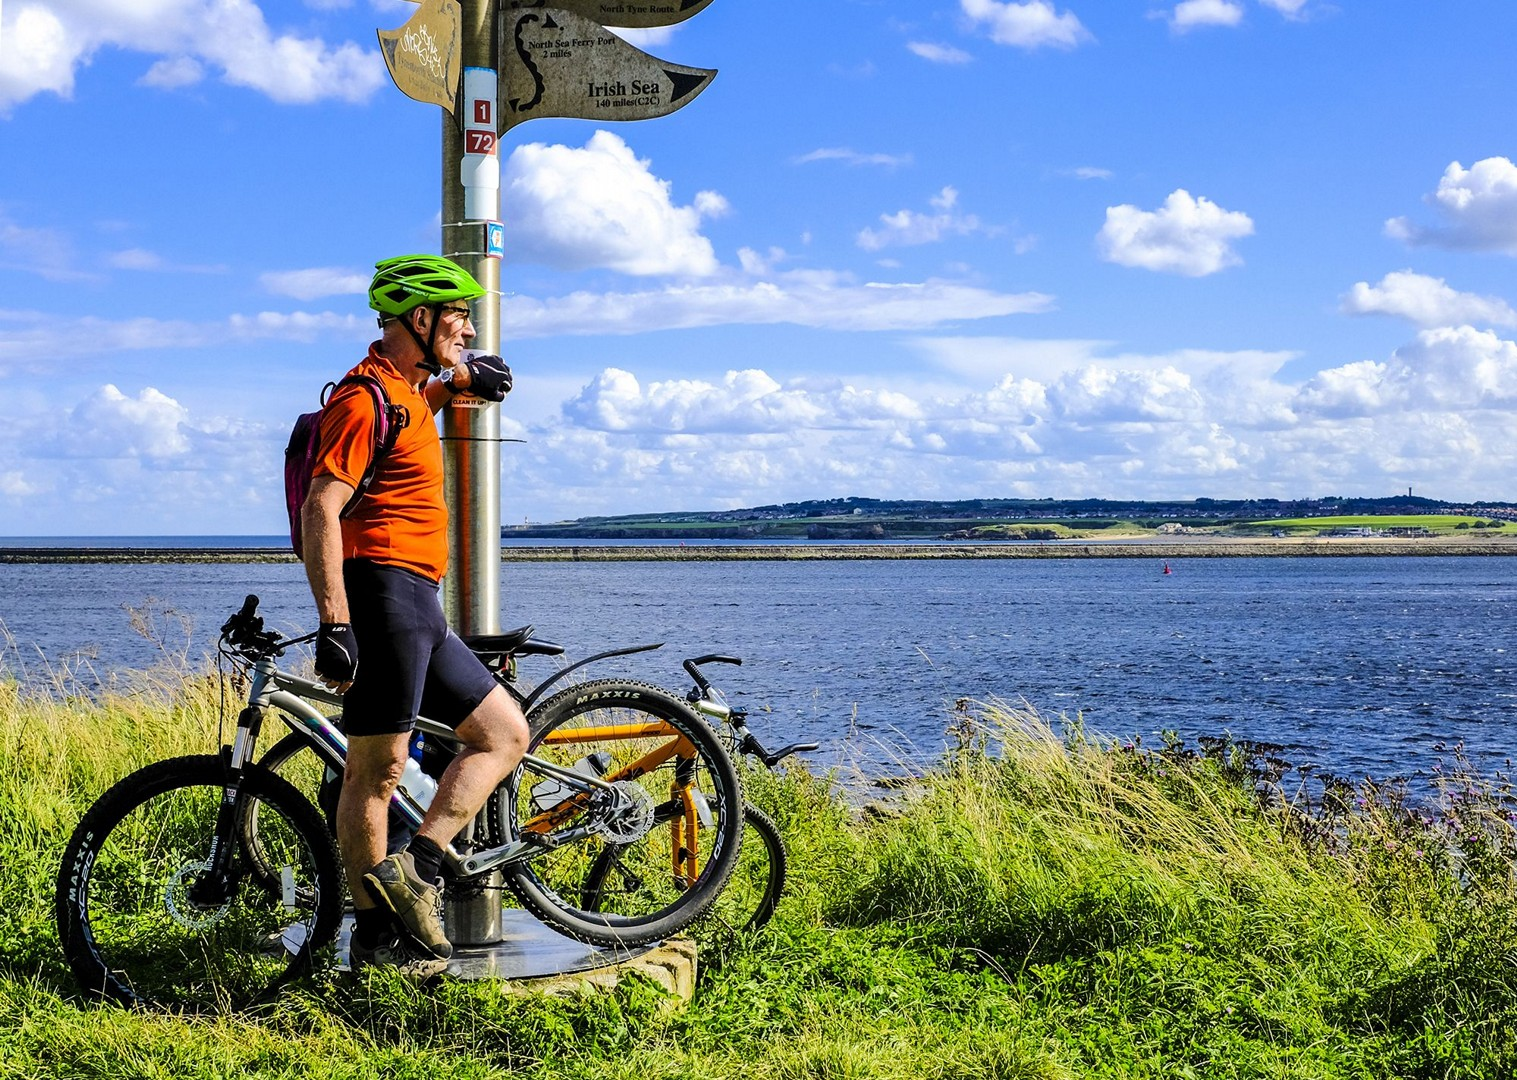 coast-to-coast-self-guided-3-day-holiday.jpg - UK - C2C - Coast to Coast 3 Days Cycling - Self-Guided Leisure Cycling Holiday - Leisure Cycling